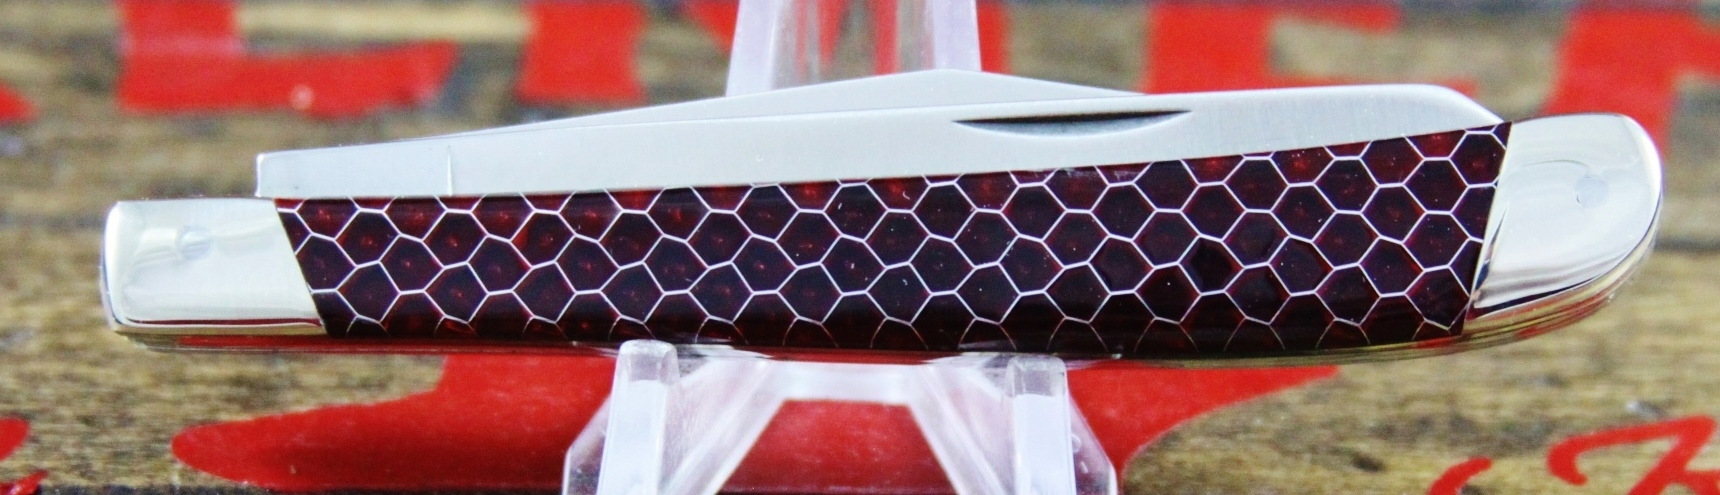 Honeycomb Handle Material Example - 2